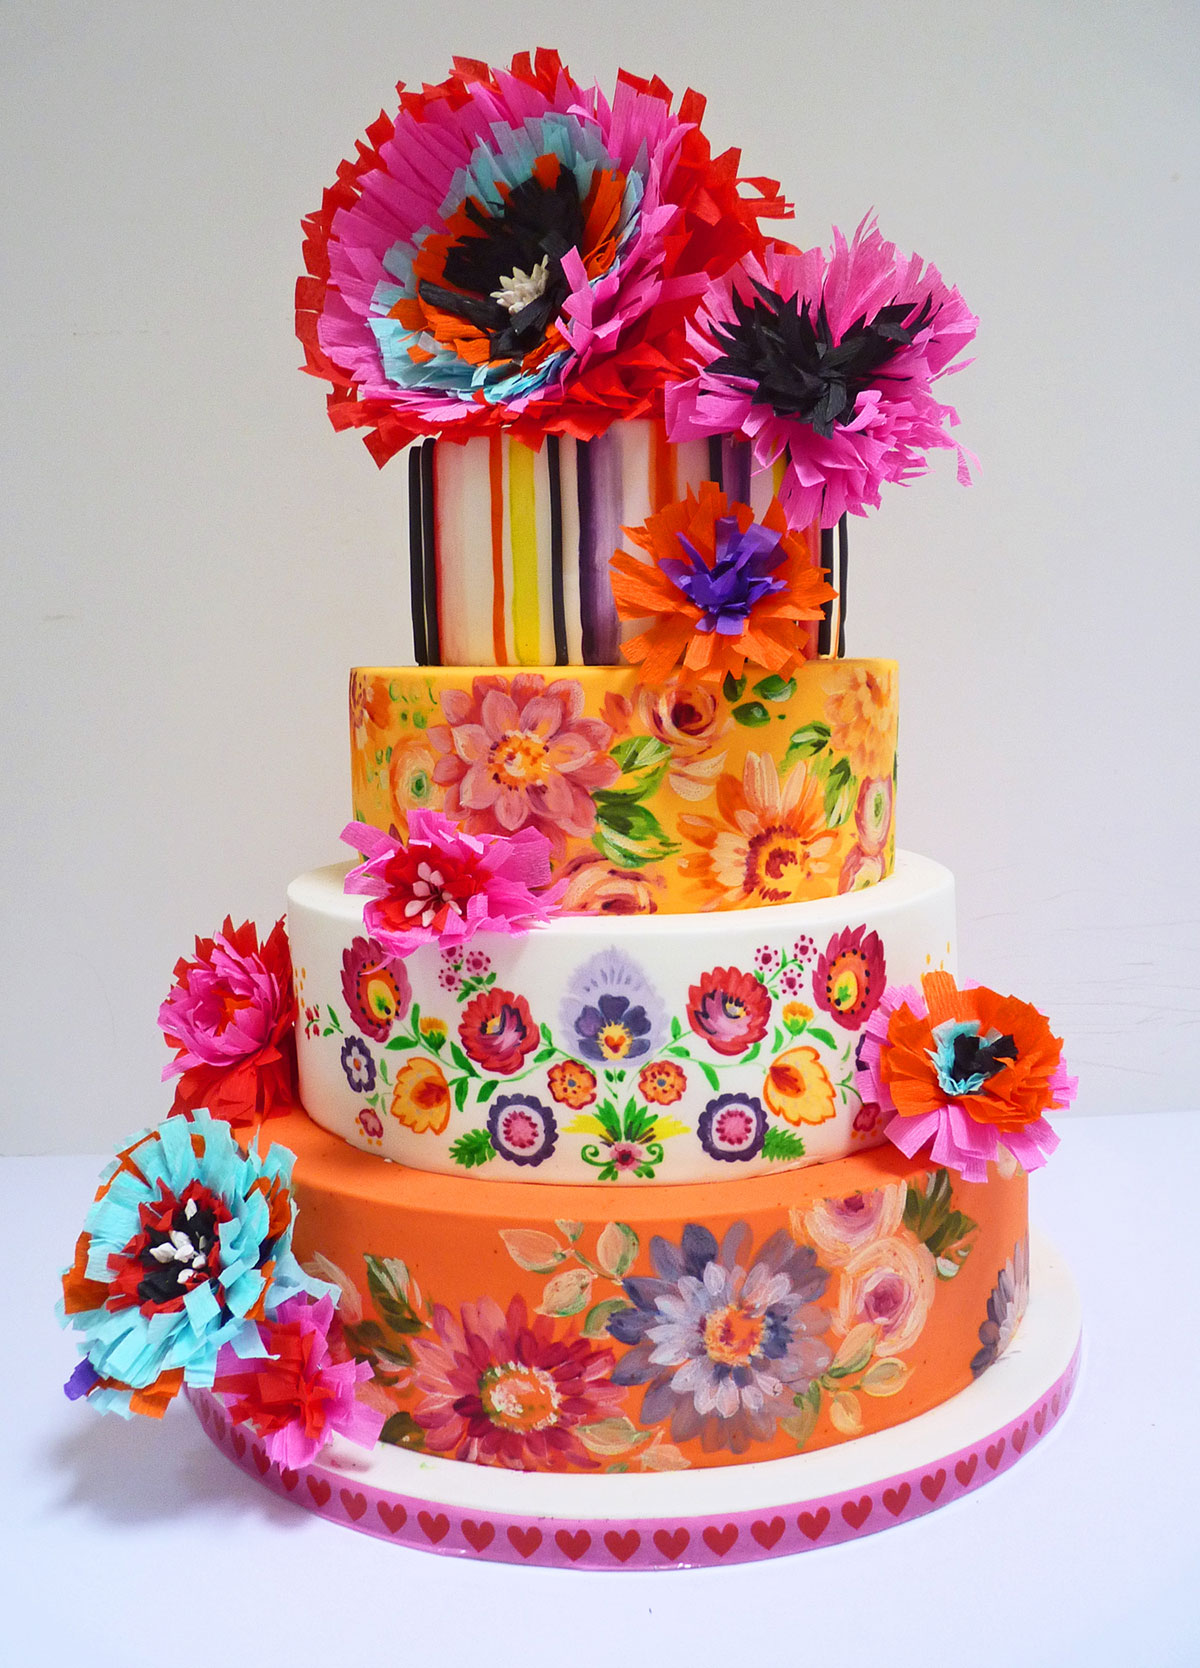 Mexican Cakes Wedding cakes nevie-pie cakes